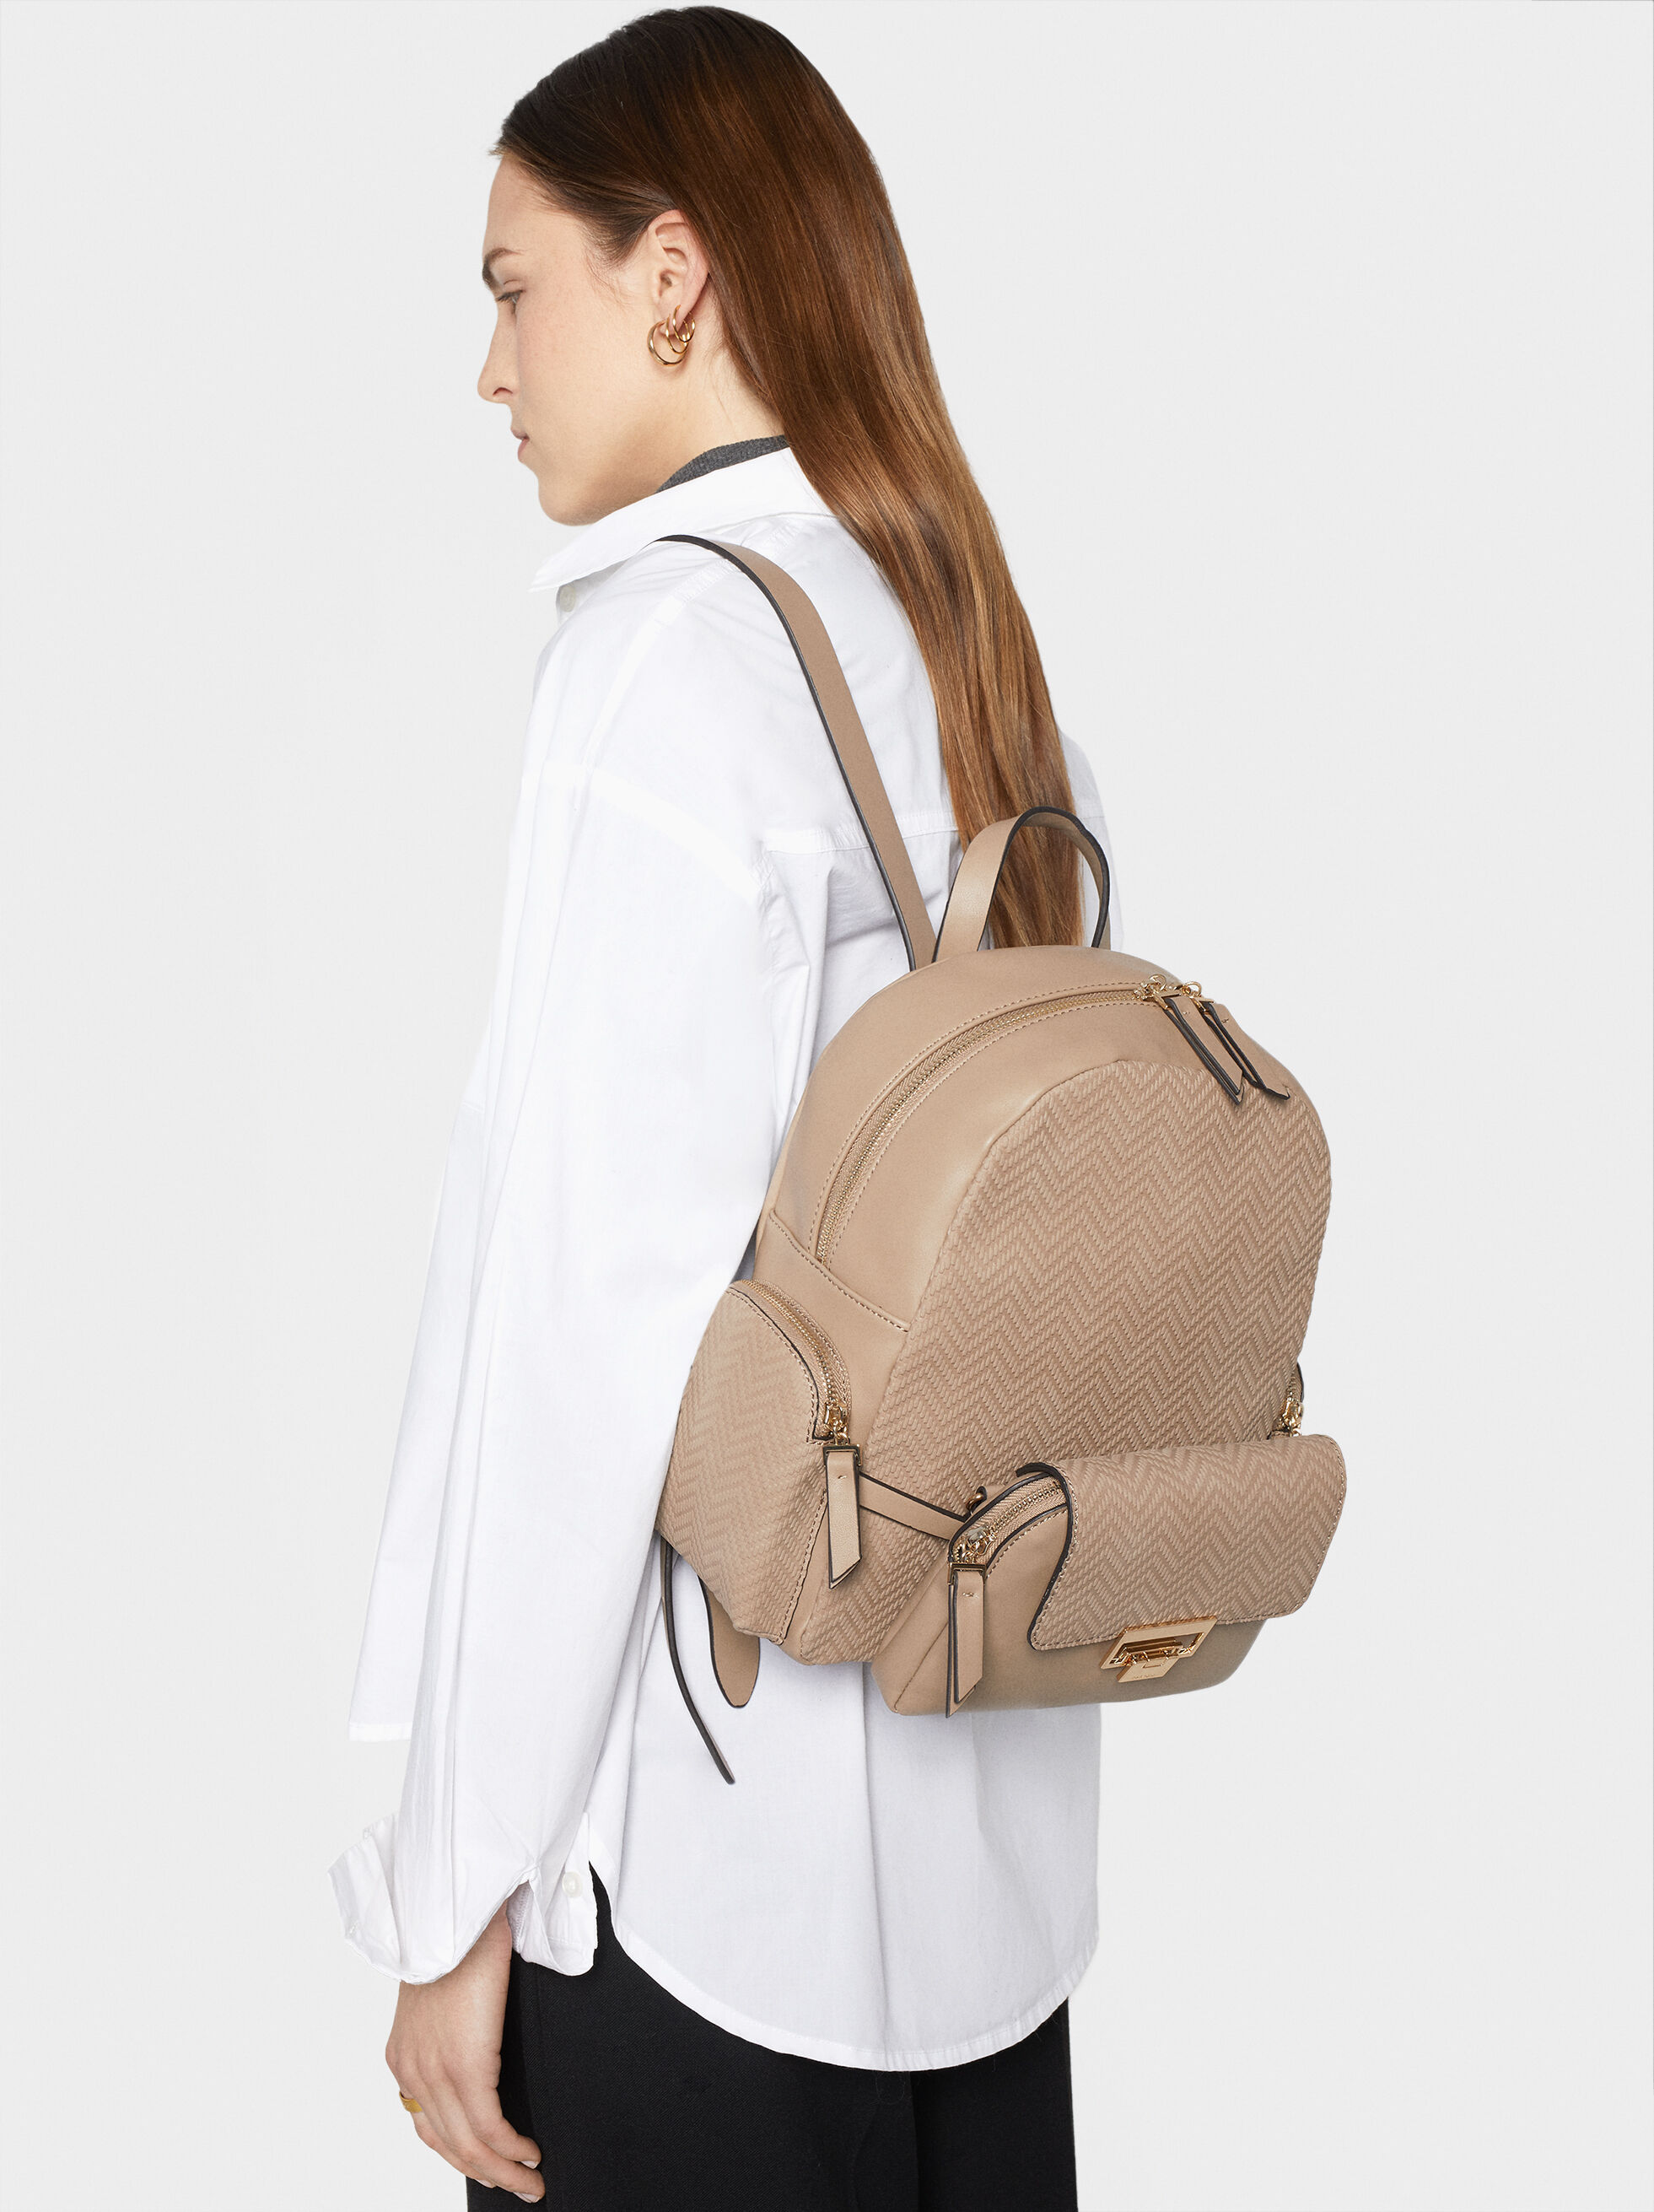 Backpack With Outer Pockets, Brown, hi-res